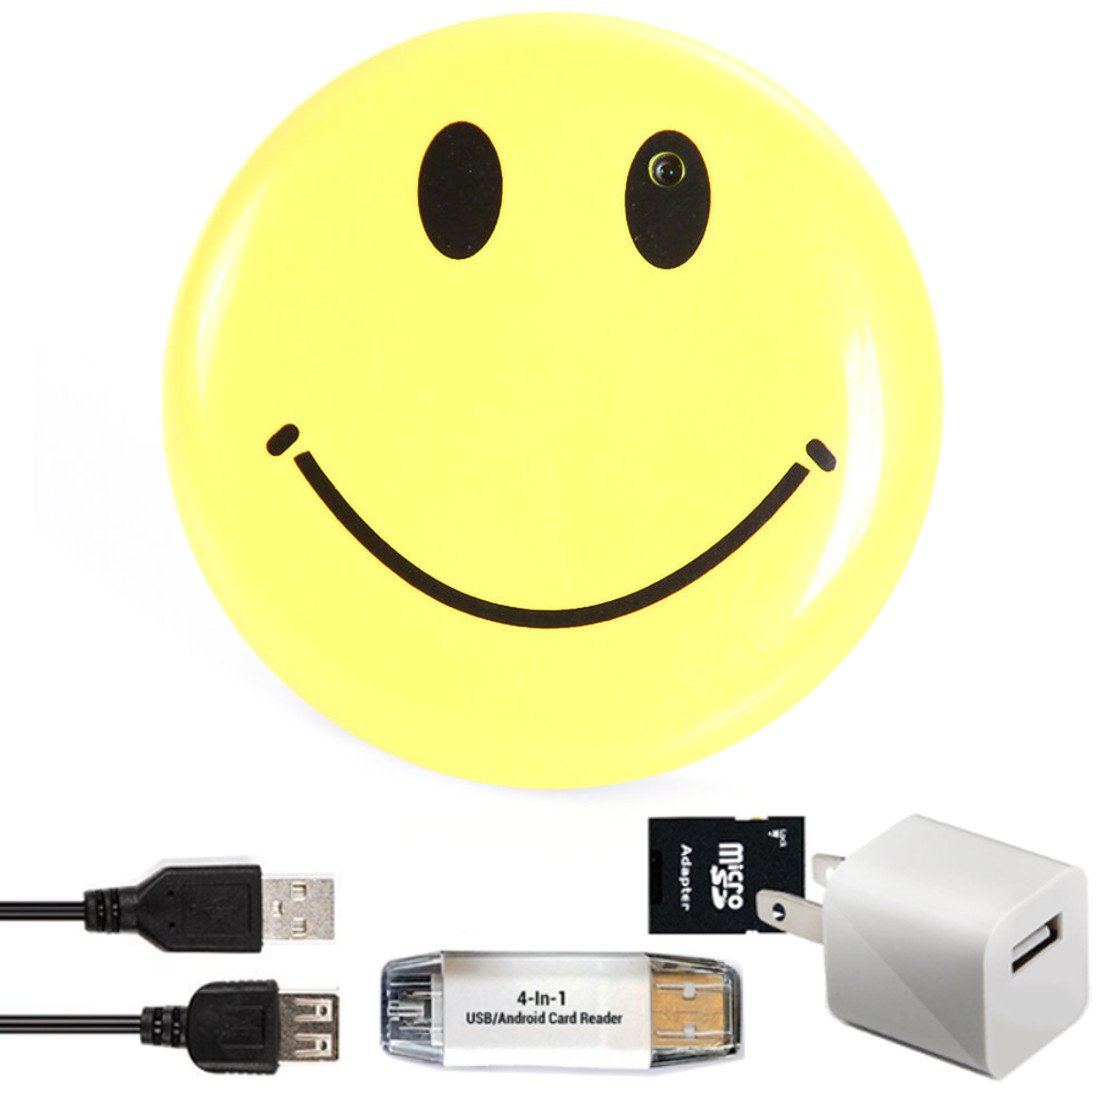 Smiley Face Body Camera & DVR- Wearable Surveillance Cam - Includes Bonus SD Card Adapter, 4-In-1 Card Reader & USB Wall Charger – Features Video, Photo, PC Webcam and More - Satisfaction Guarantee